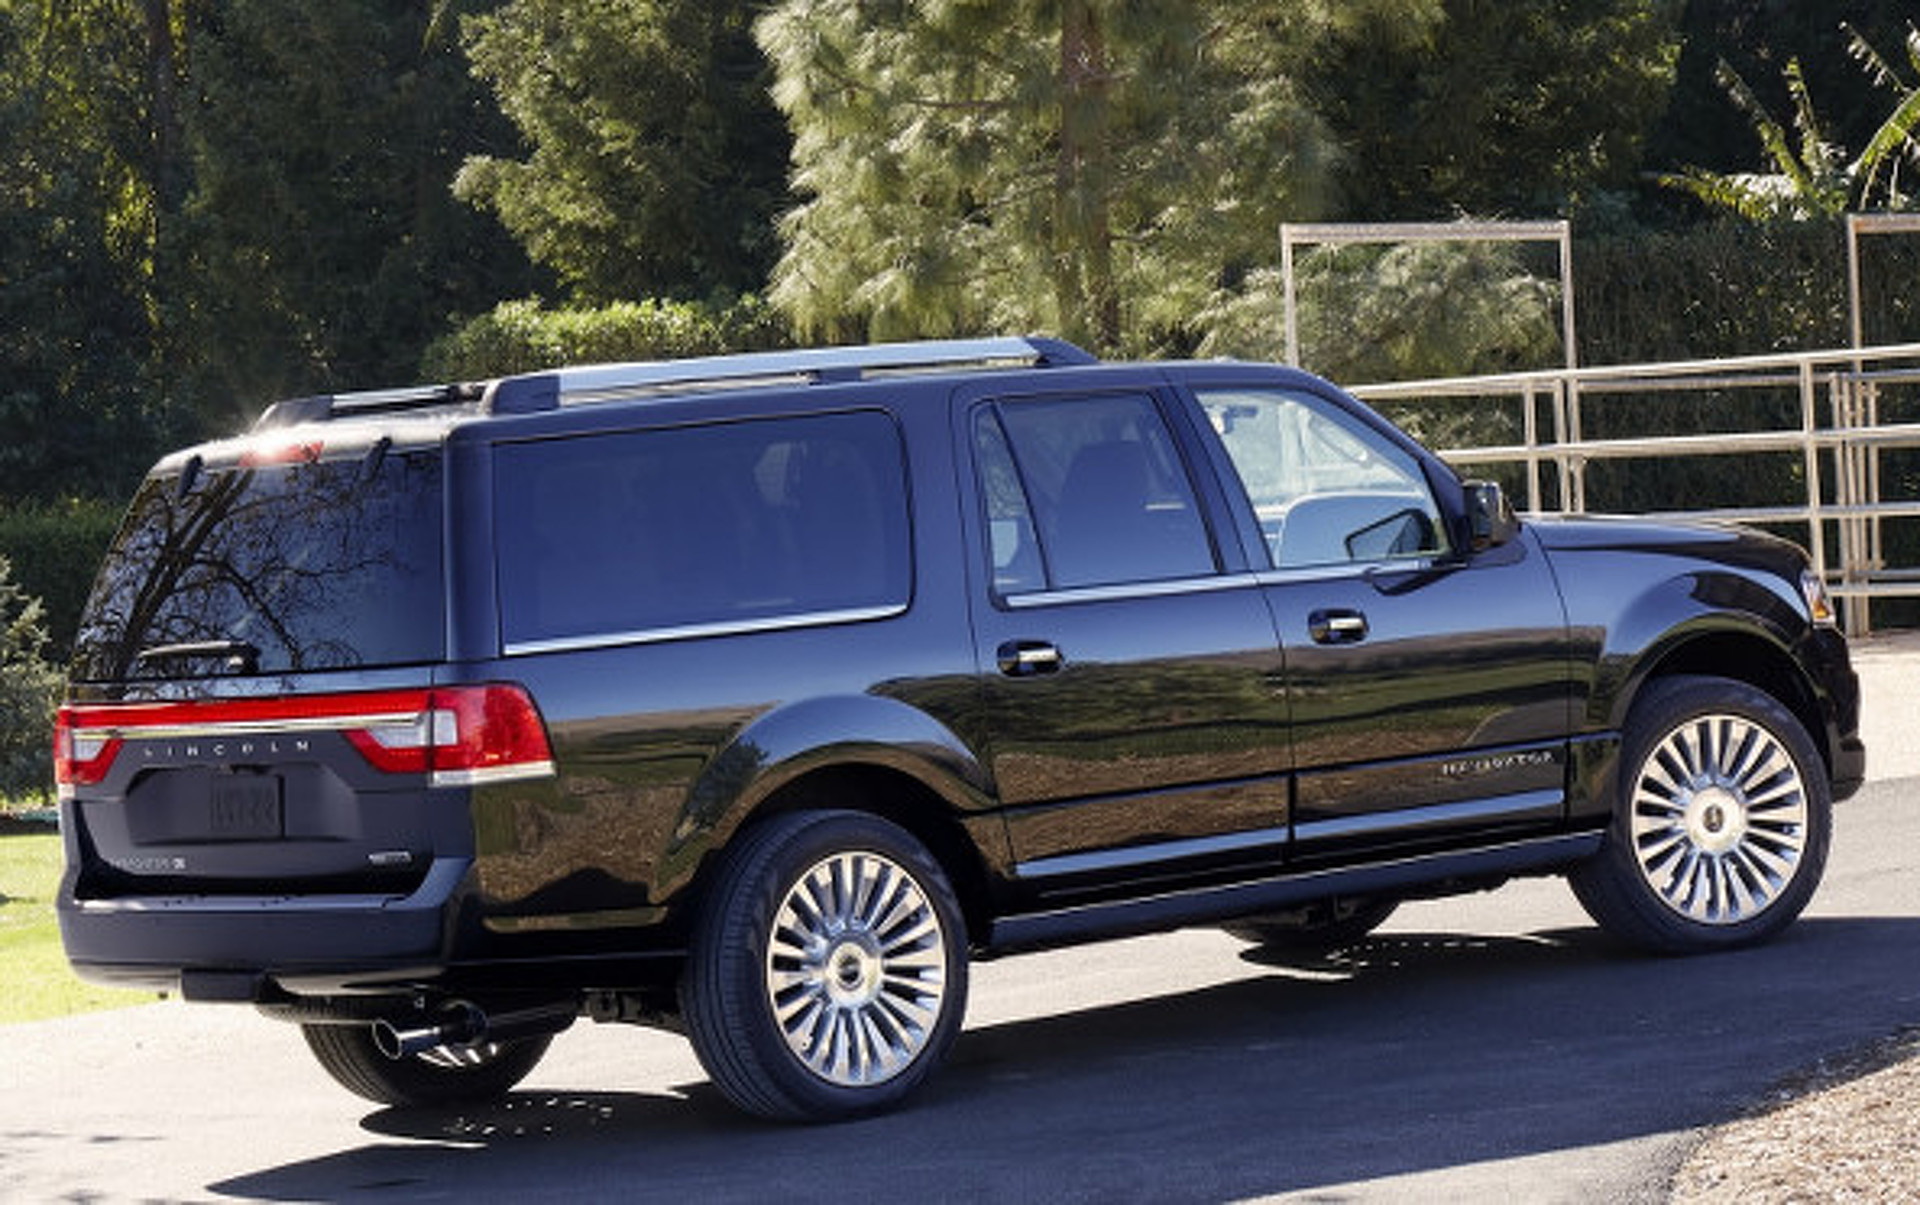 Chevy Suv Models >> The Better Deal: Lincoln Navigator or Cadillac Escalade ...